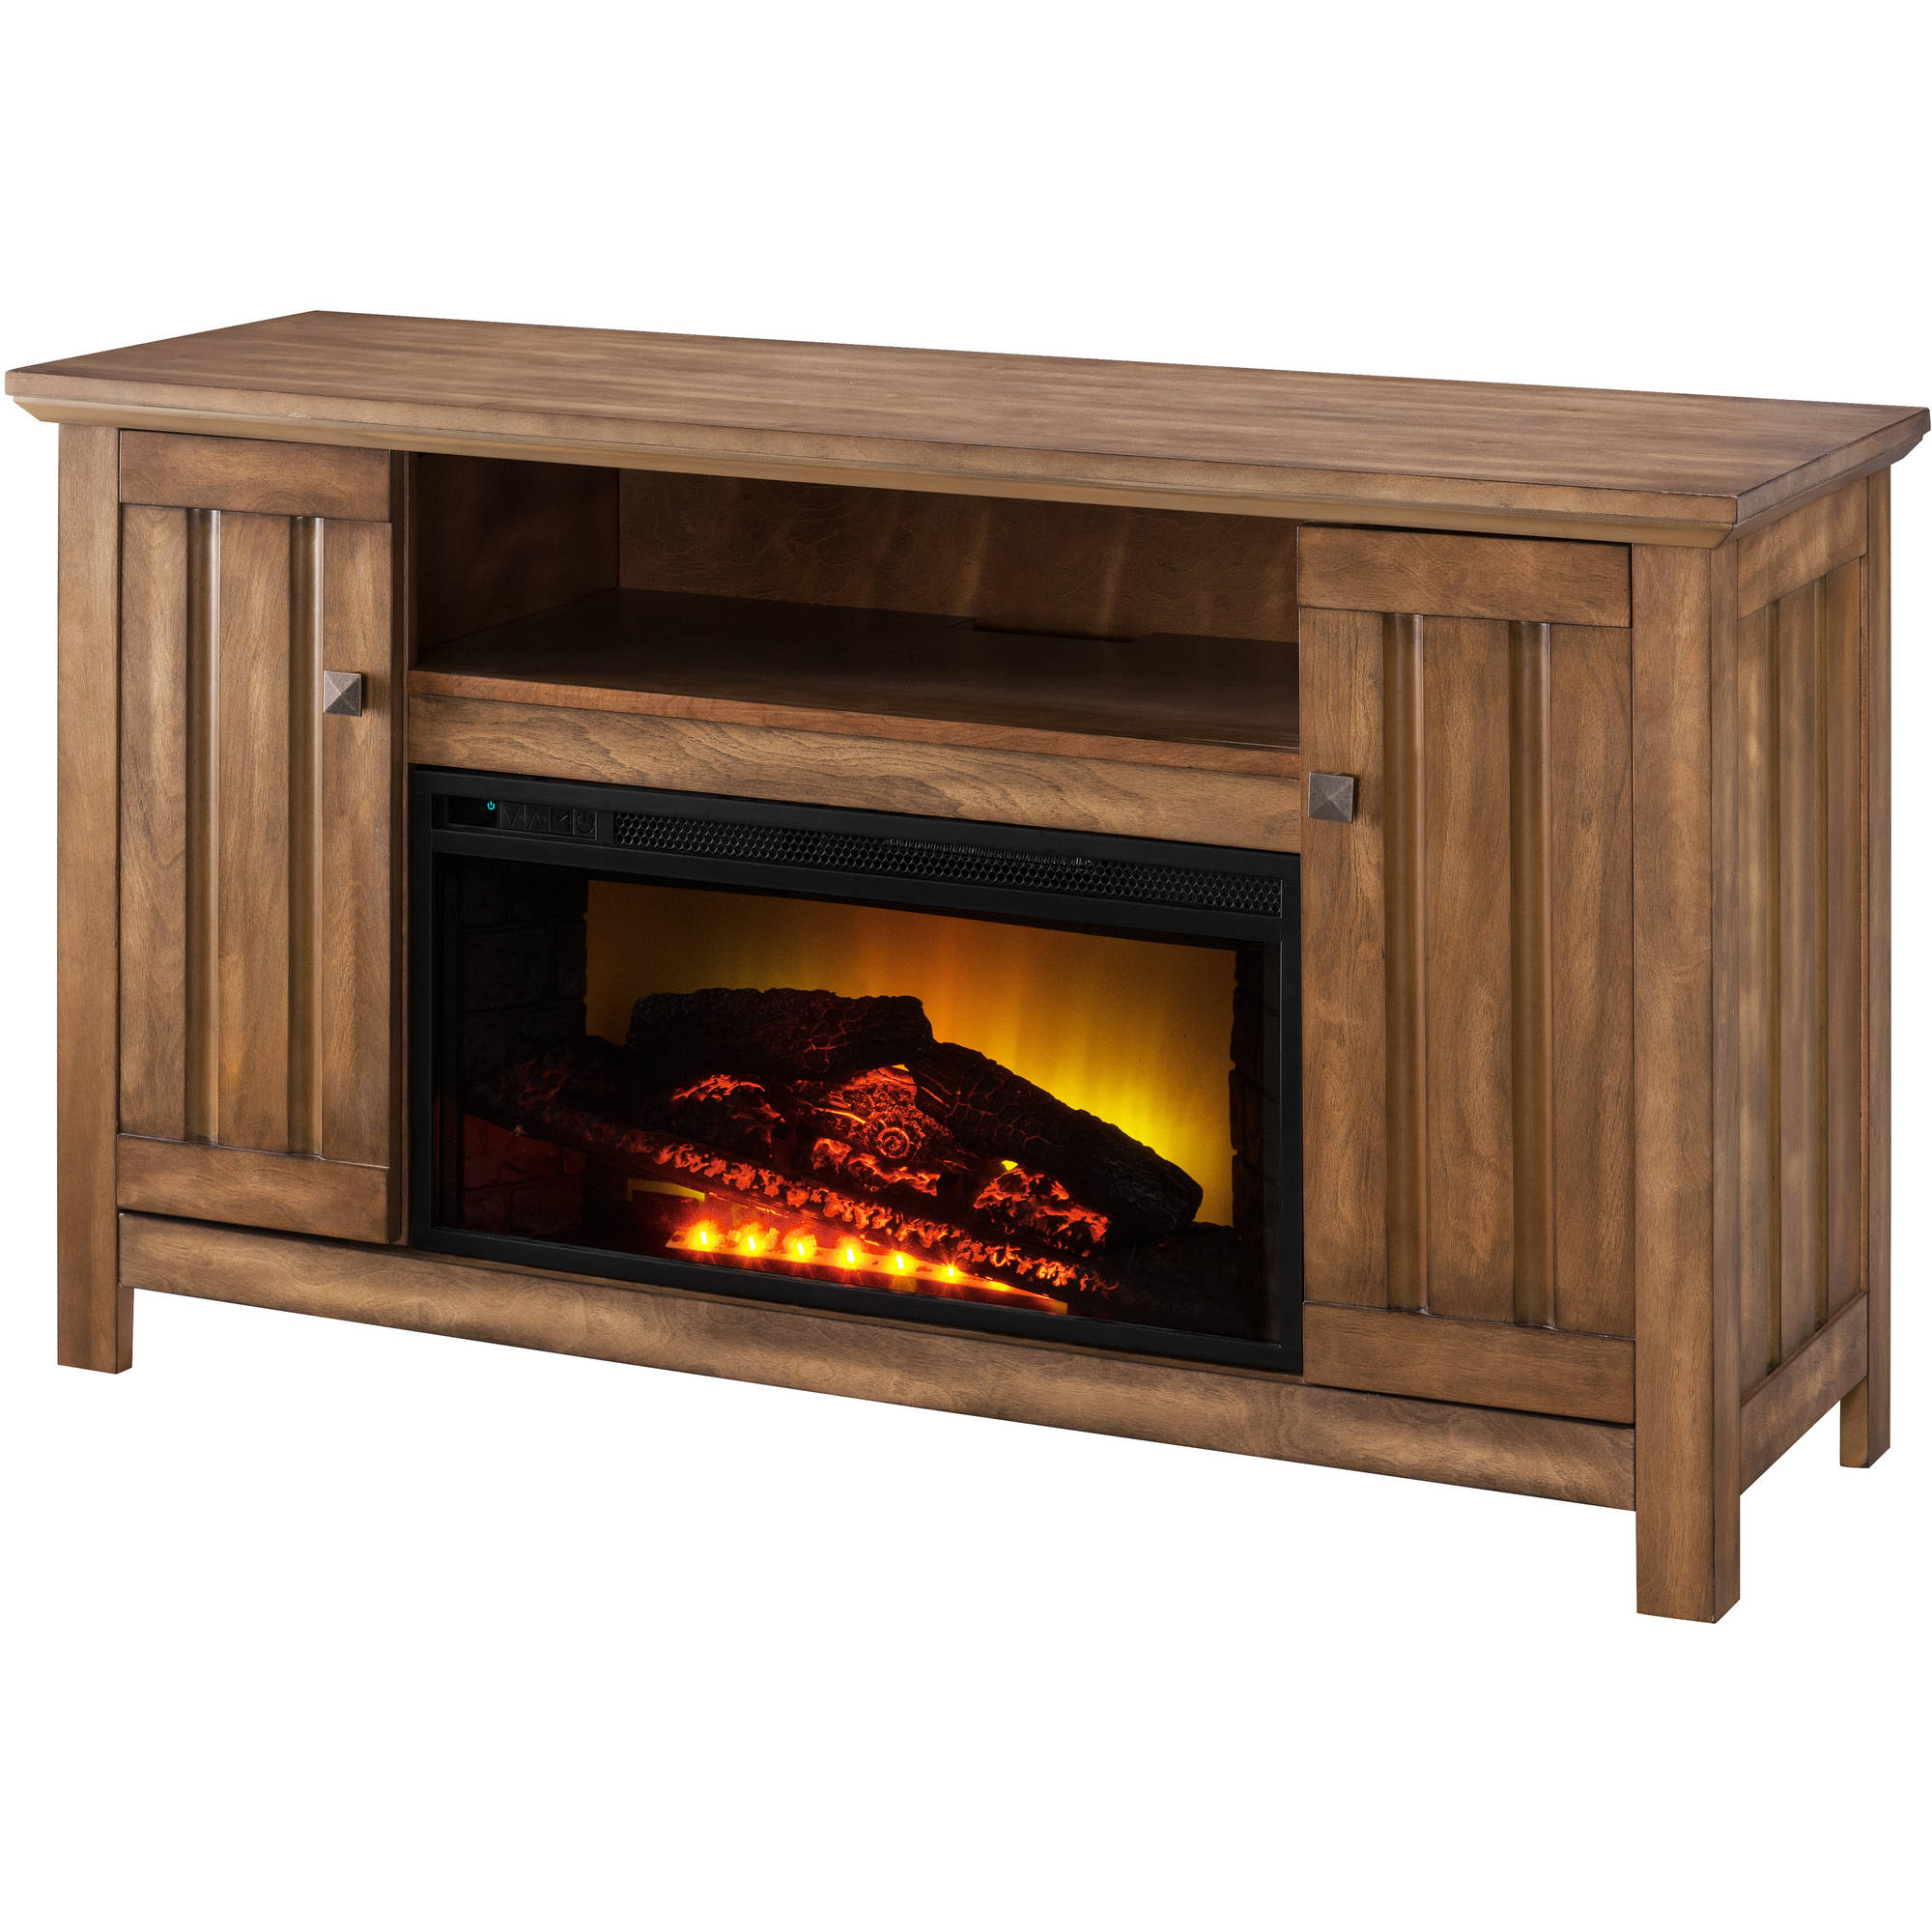 "Prokonian 53"" Driftwood Media Fireplace for TVs up to 51"""